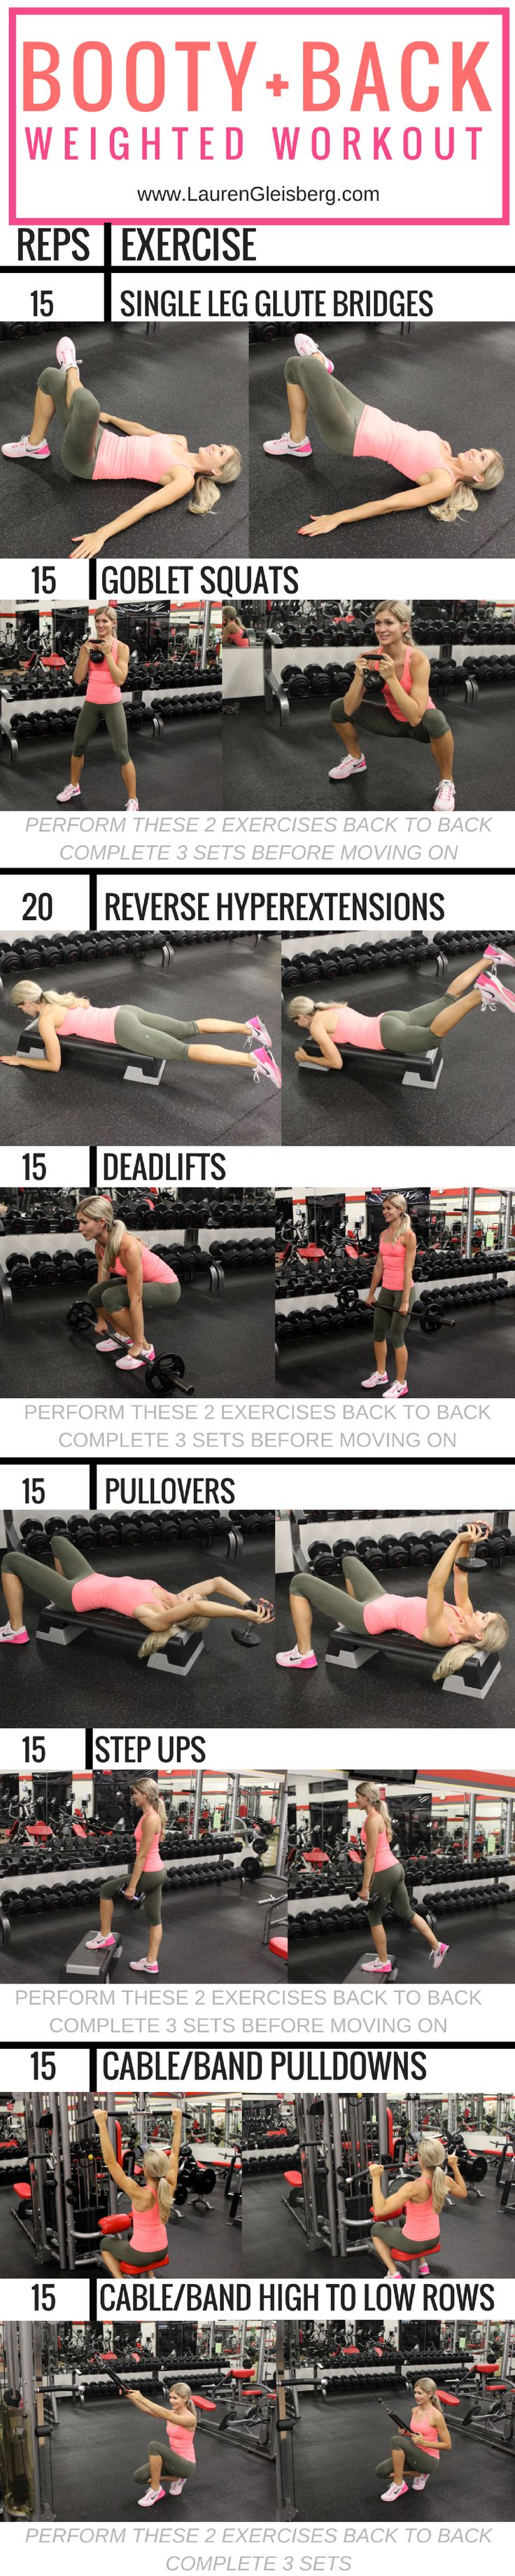 Booty & back weighted workout